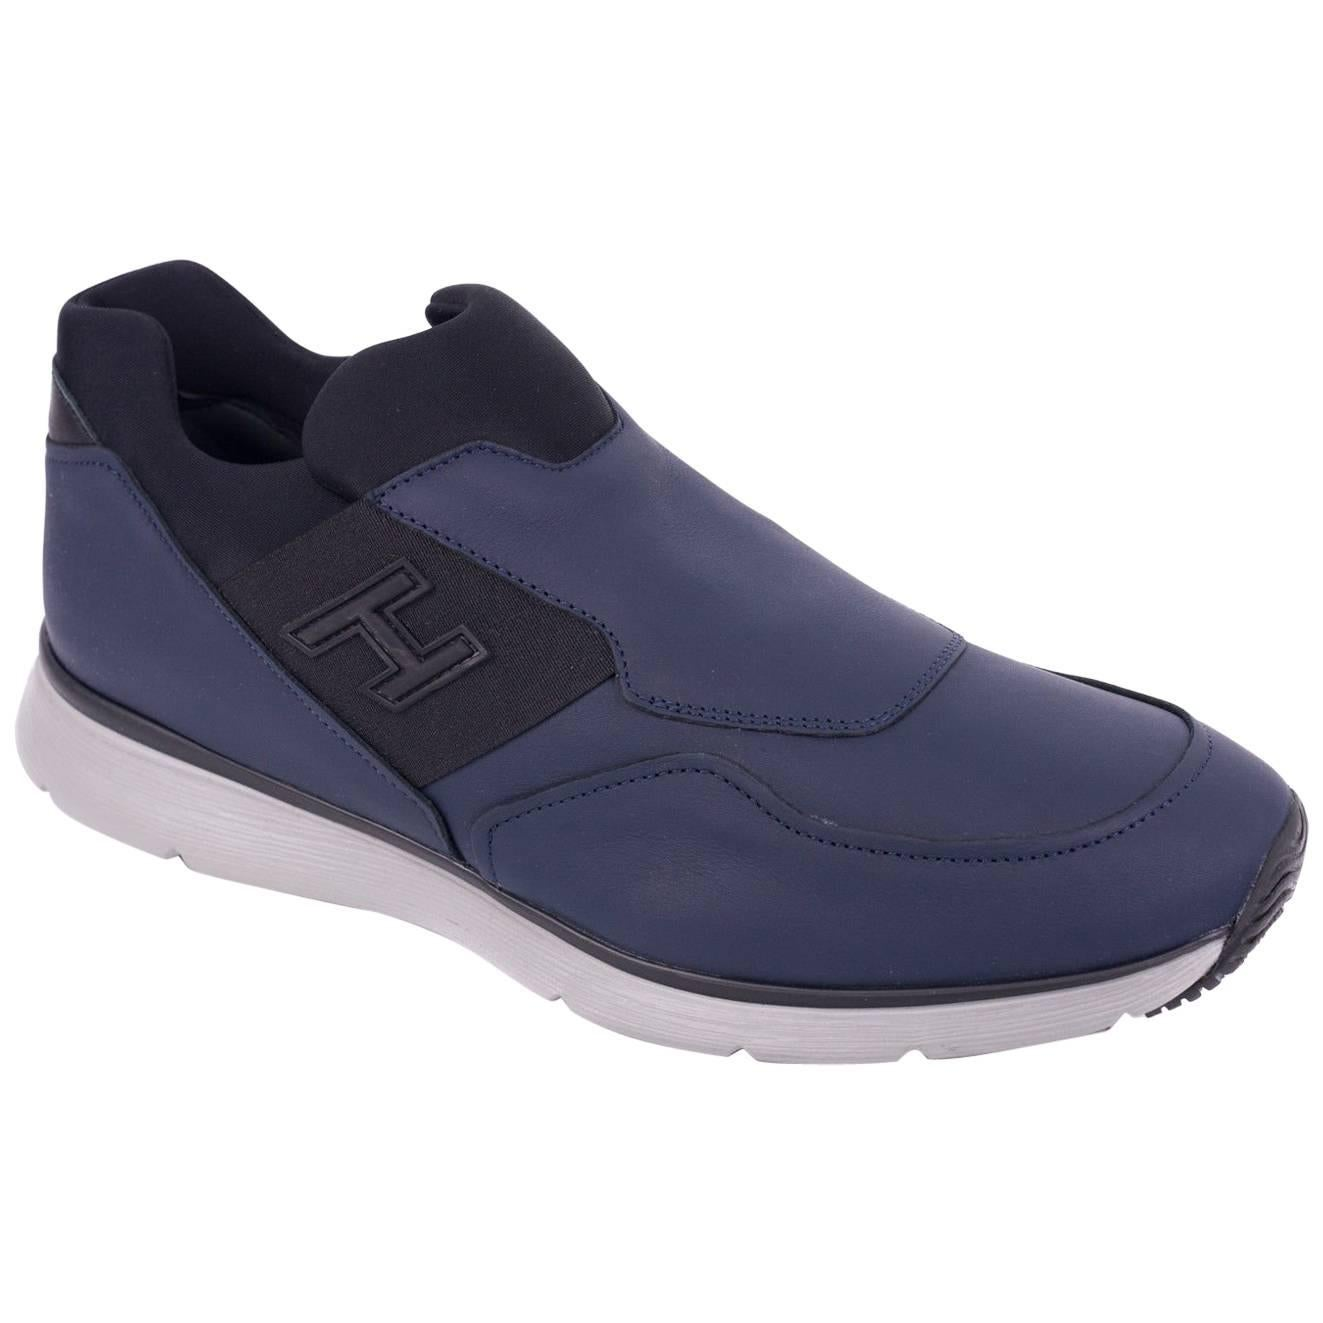 clearance new arrival Hogan Men's Blue Leather Slip O... clearance pay with visa amazon cheap online clearance largest supplier discount wholesale price C9KgmNvMQI